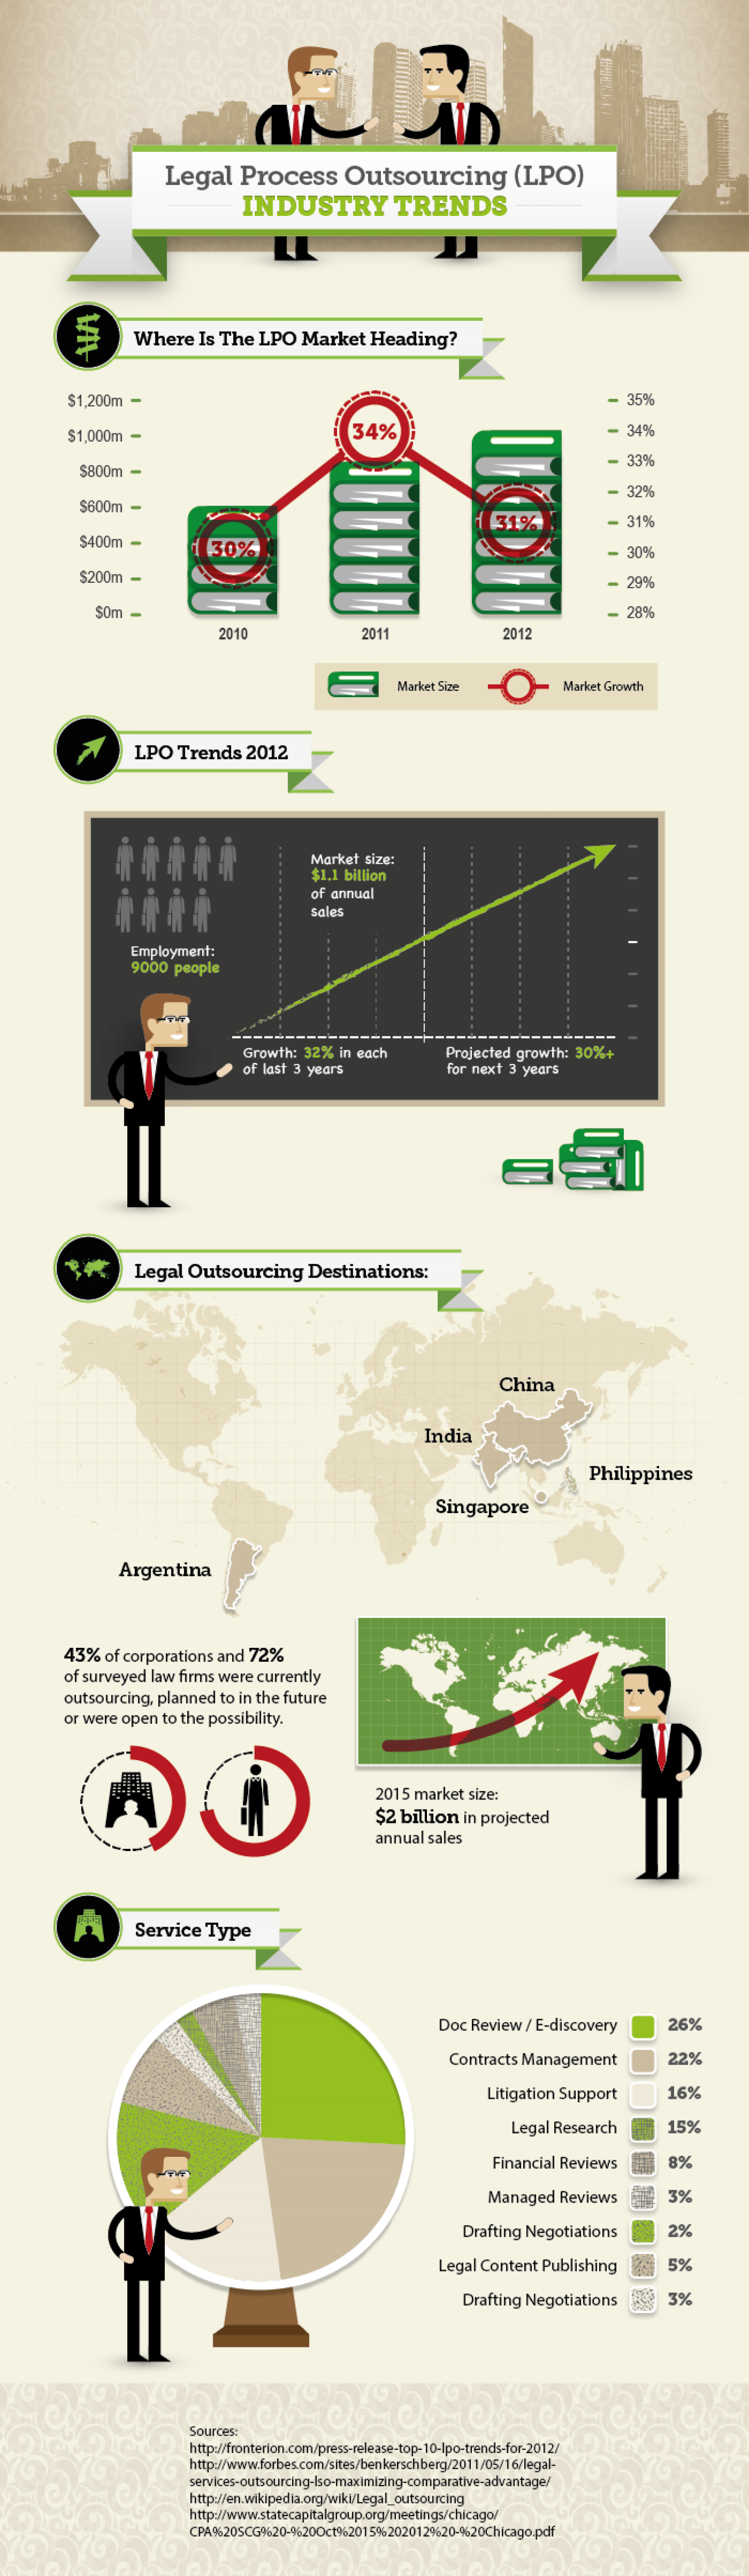 Legal Process Outsourcing Trends Infographic